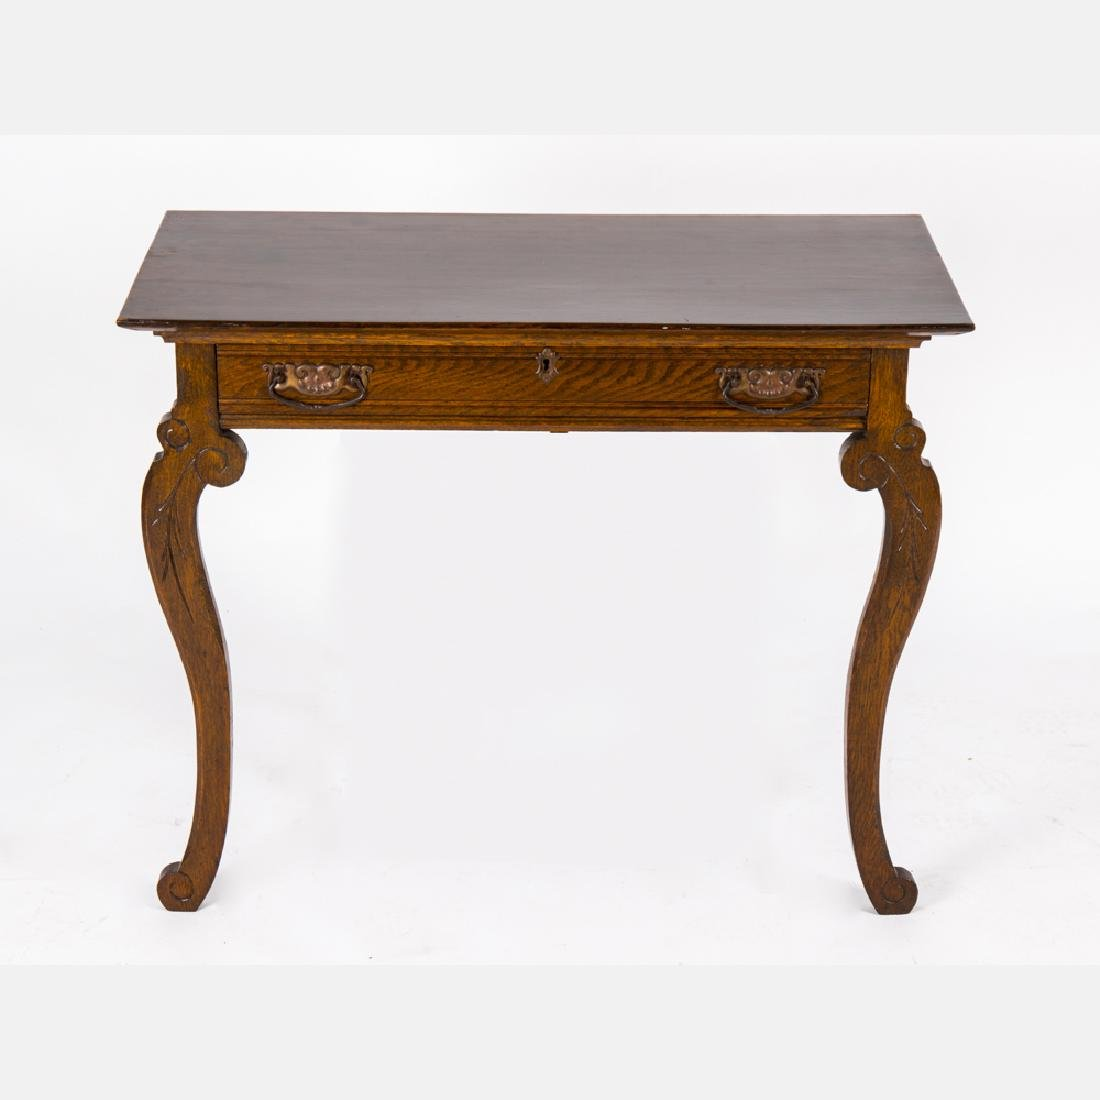 A Victorian Oak Hanging Console Table, 19th Century.